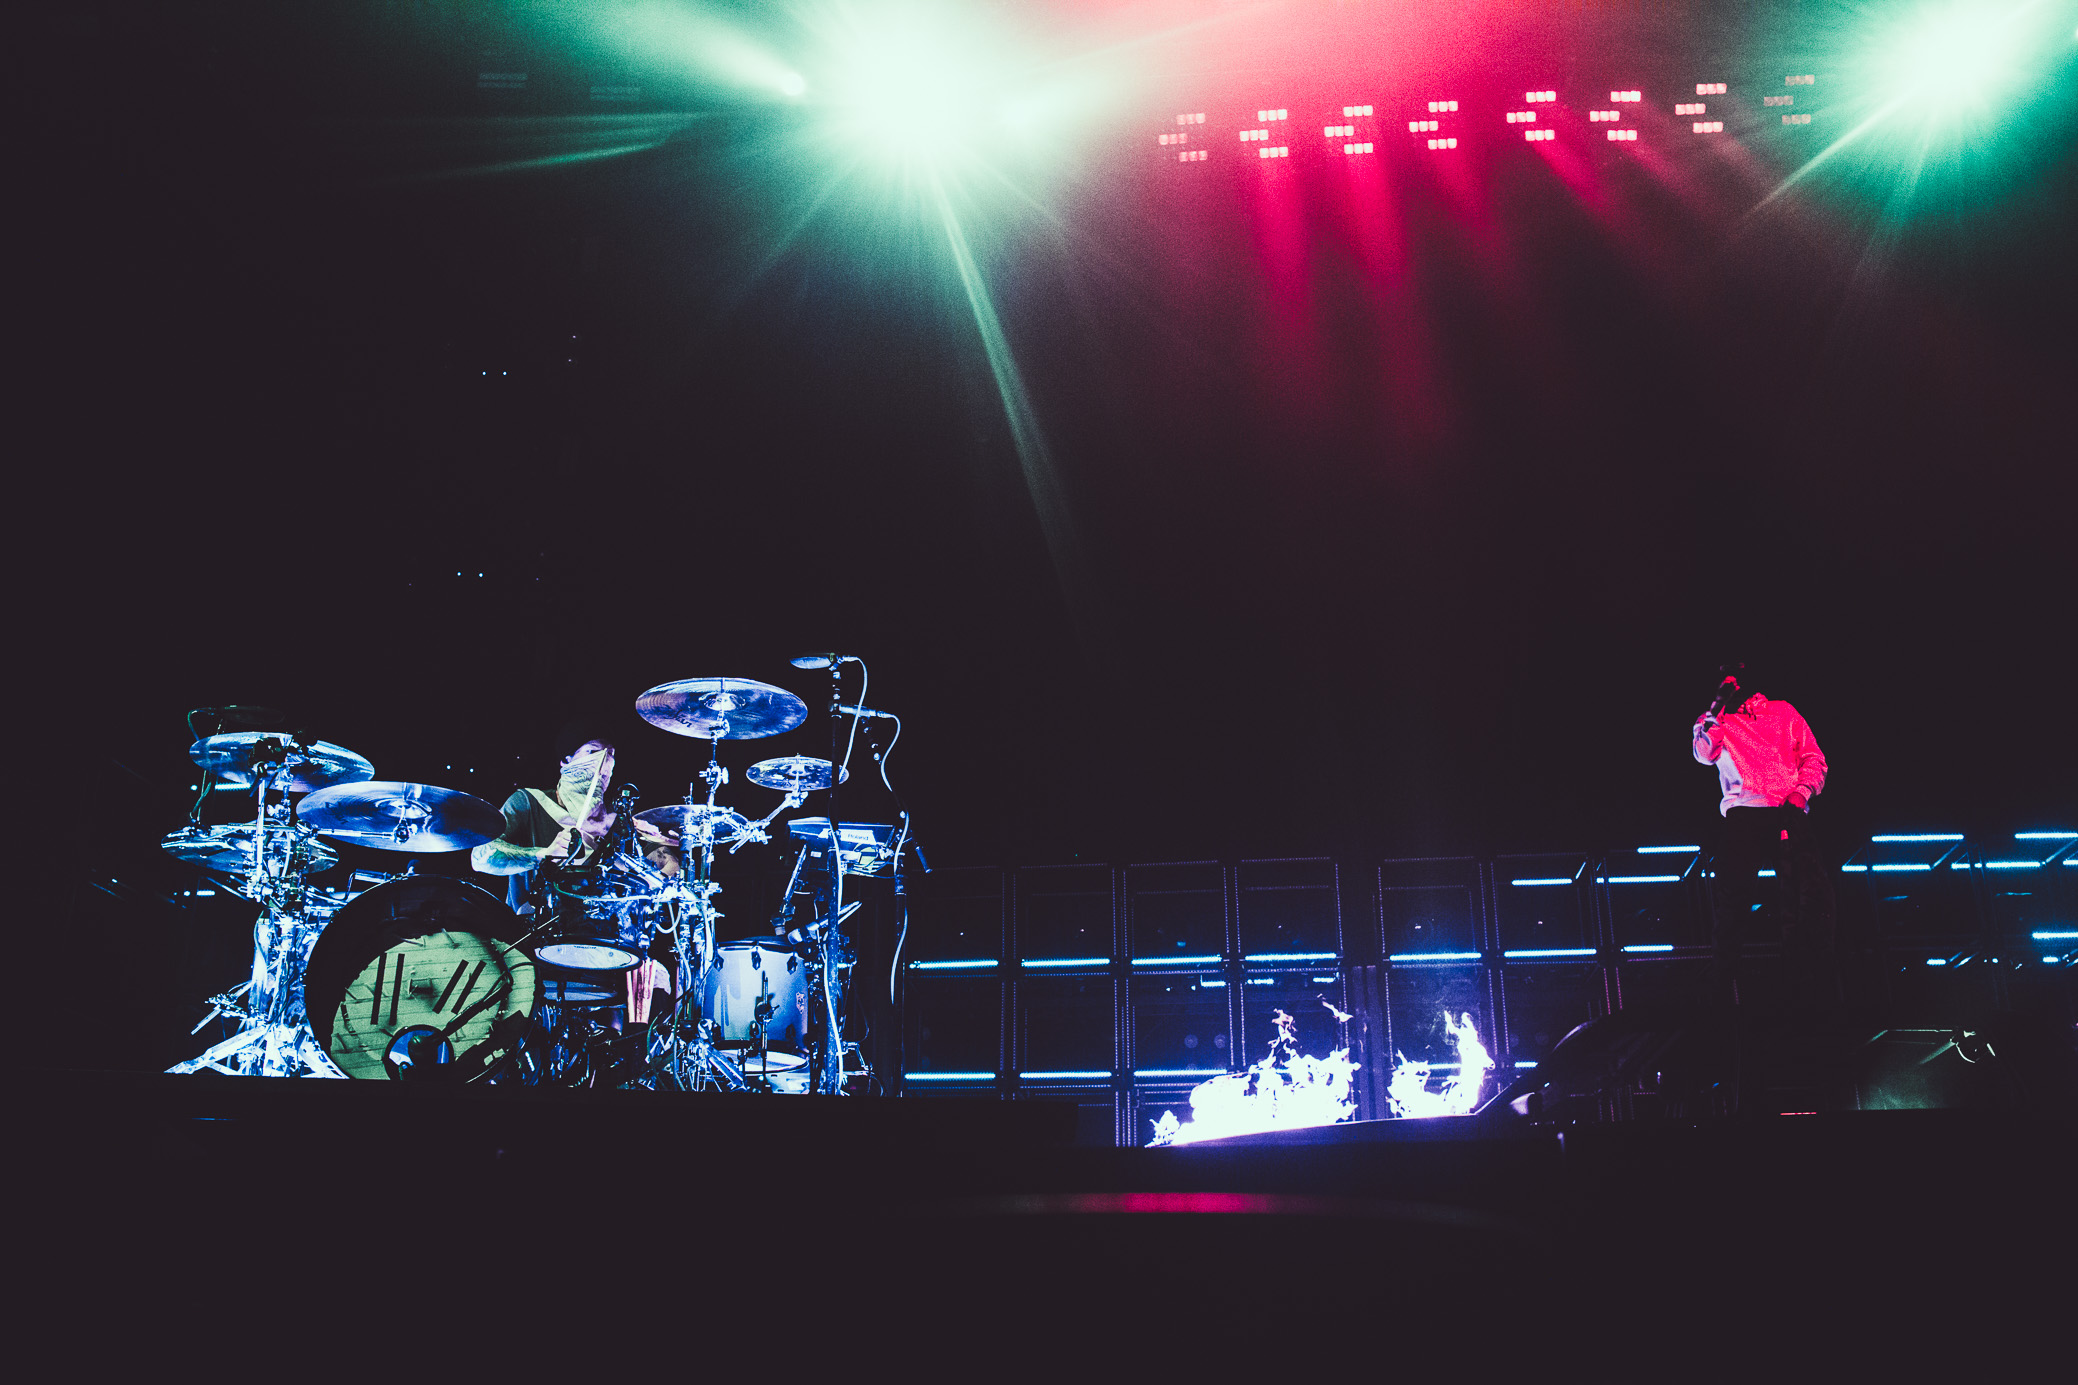 Twenty One Pilots performs at the Birmingham-Jefferson Civic Center Arena in Birmingham, Alabama on June 18th, 2019. (Photo by David A. Smith / DSmithScenes)